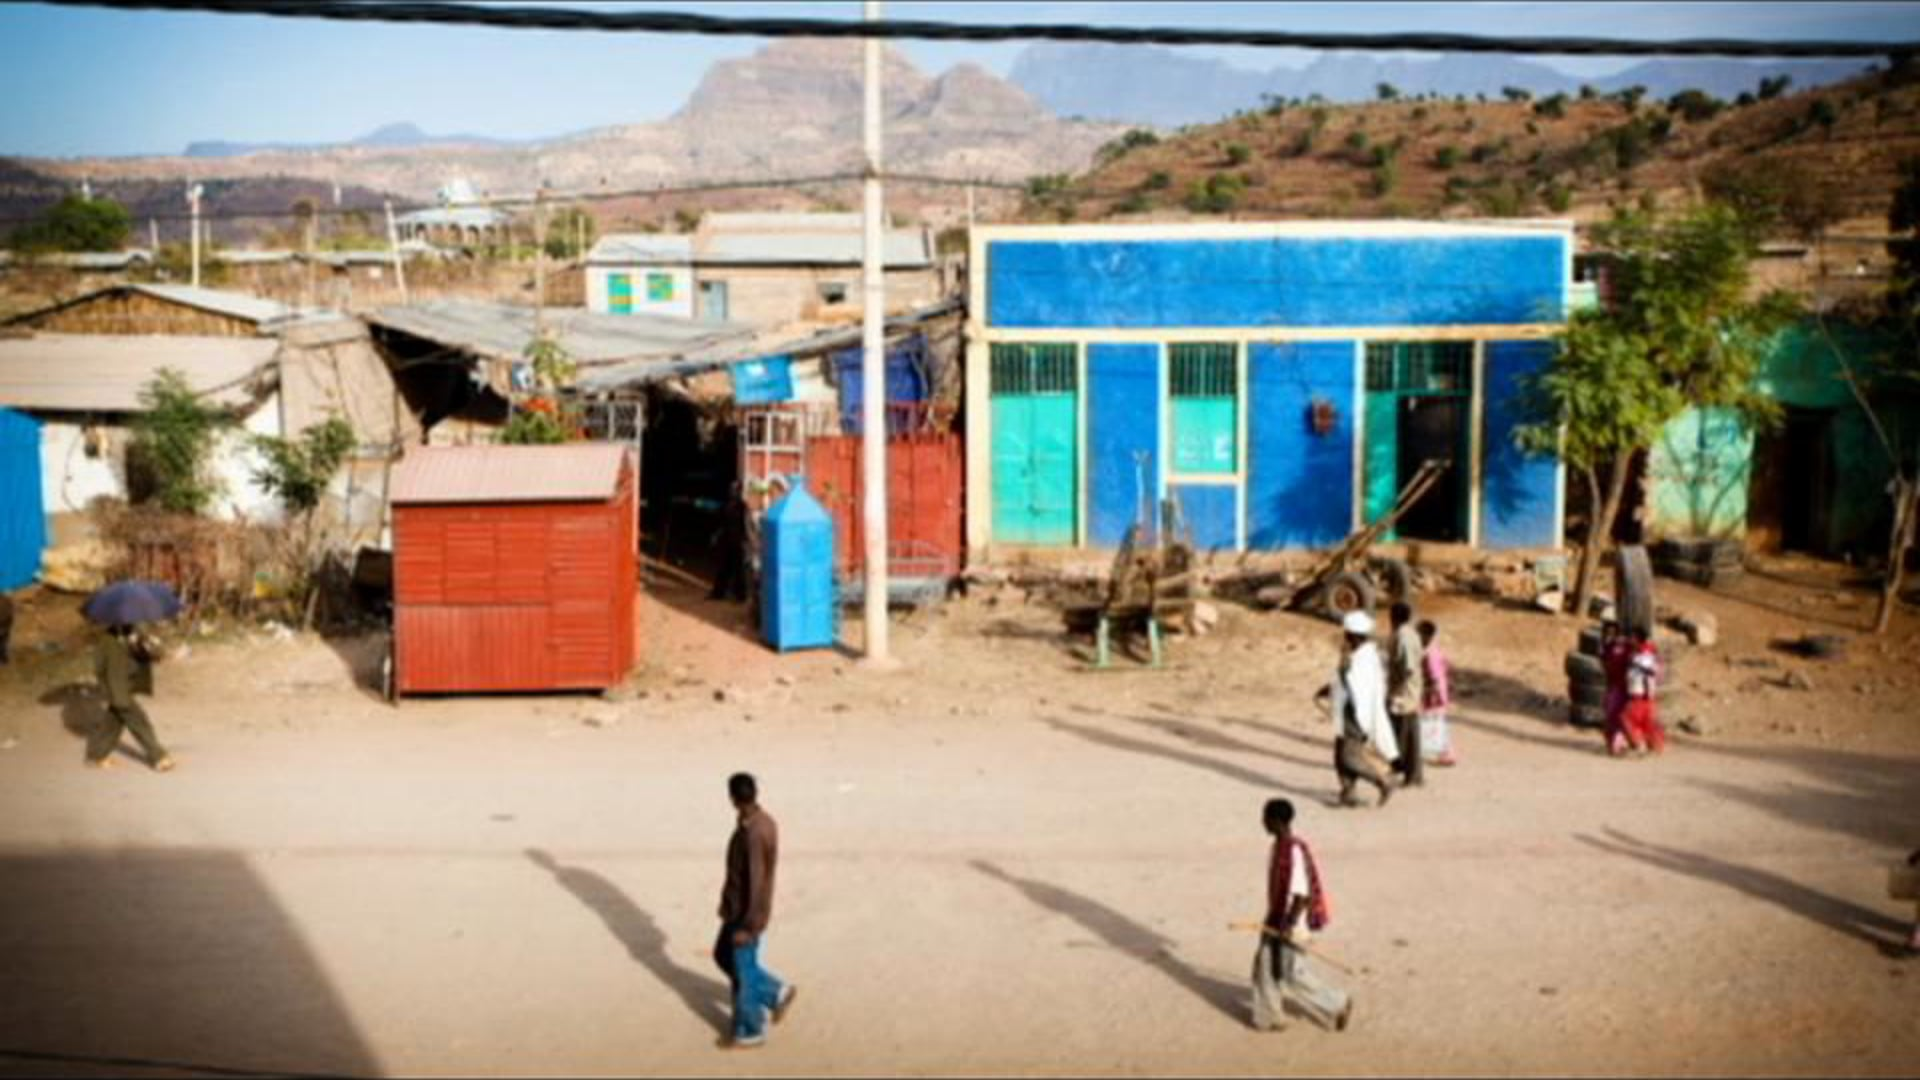 Life In Limbo - Eritrean refugees stuck in the search for a better life